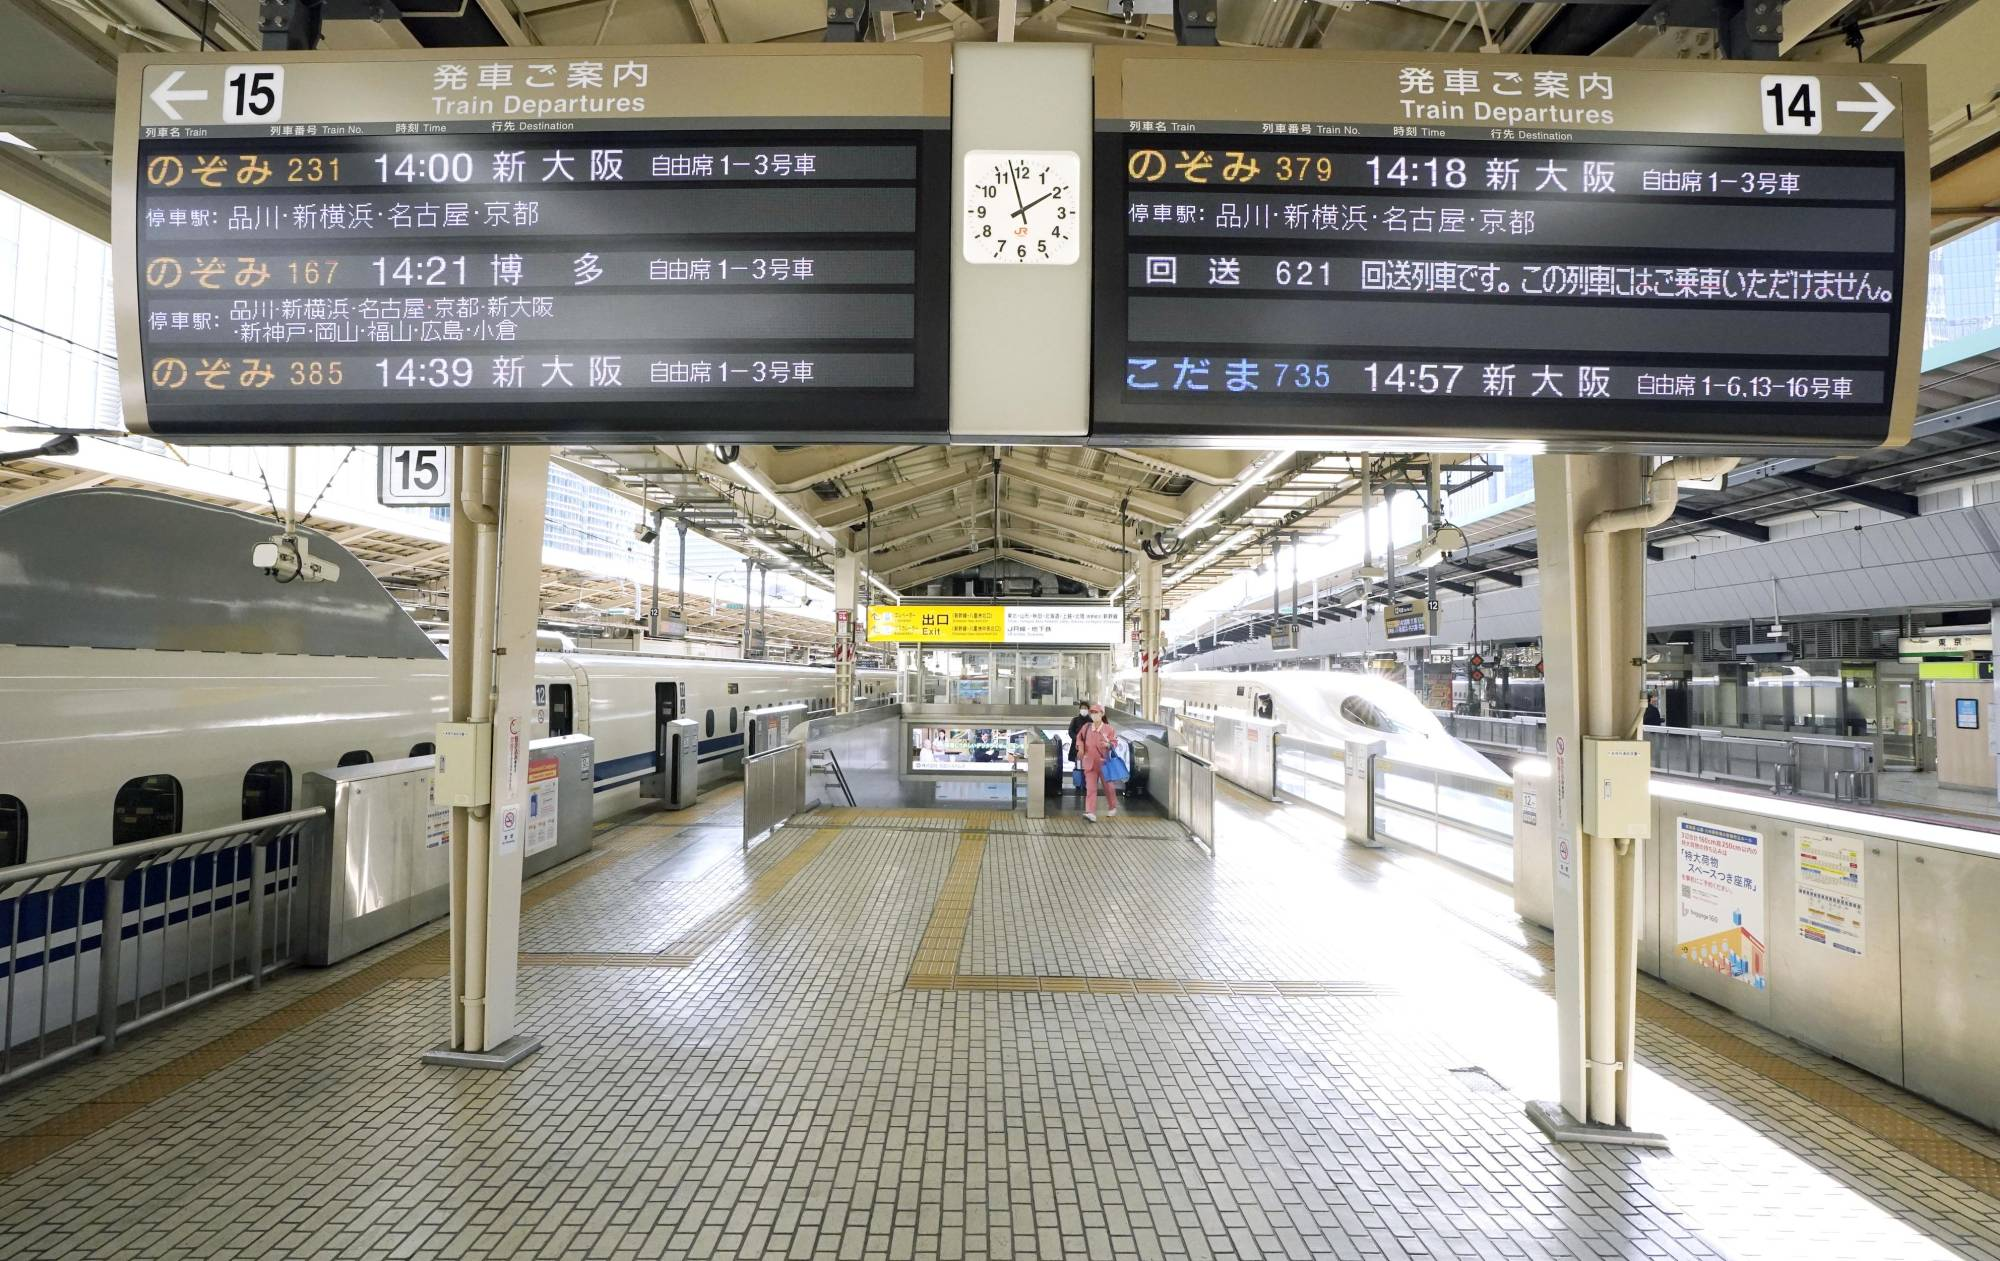 A platform for shinkansen bullet trains at JR Tokyo Station is deserted Sunday amid low passenger numbers during the New Year's holidays. | KYODO